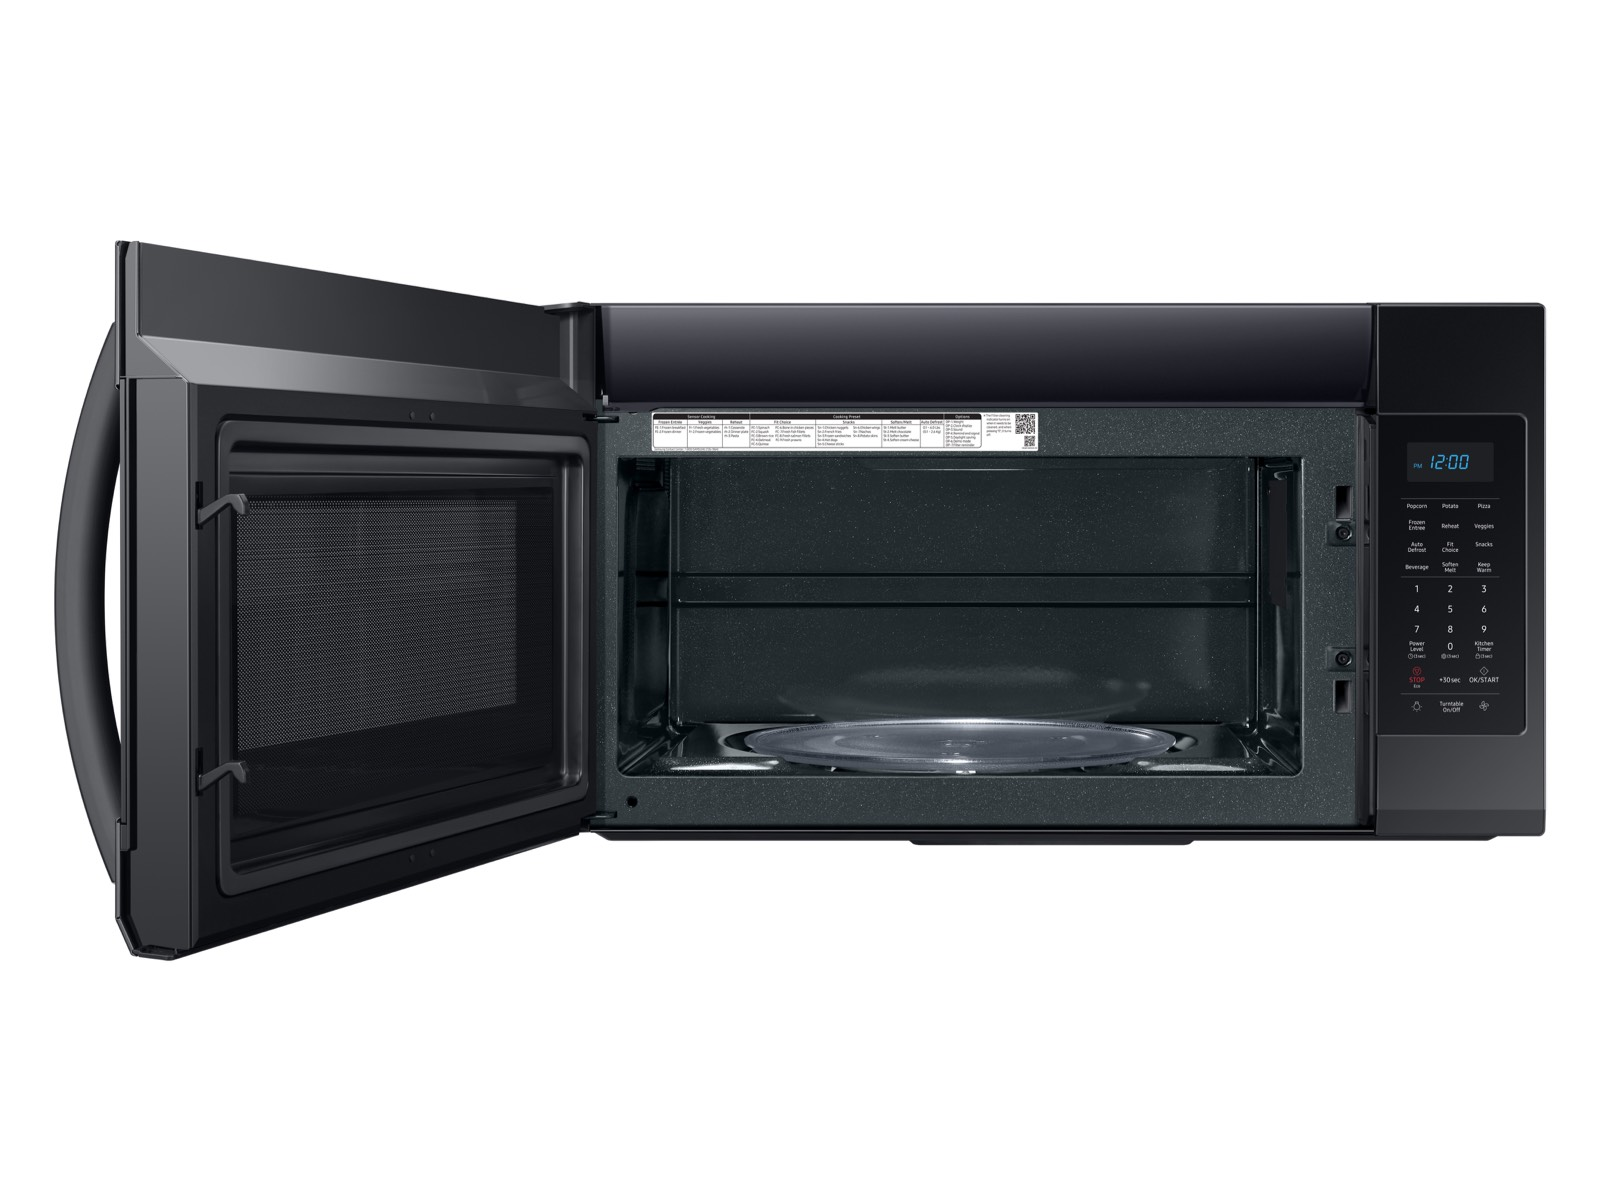 Thumbnail image of 1.9 cu ft Over The Range Microwave with Sensor Cooking in Black